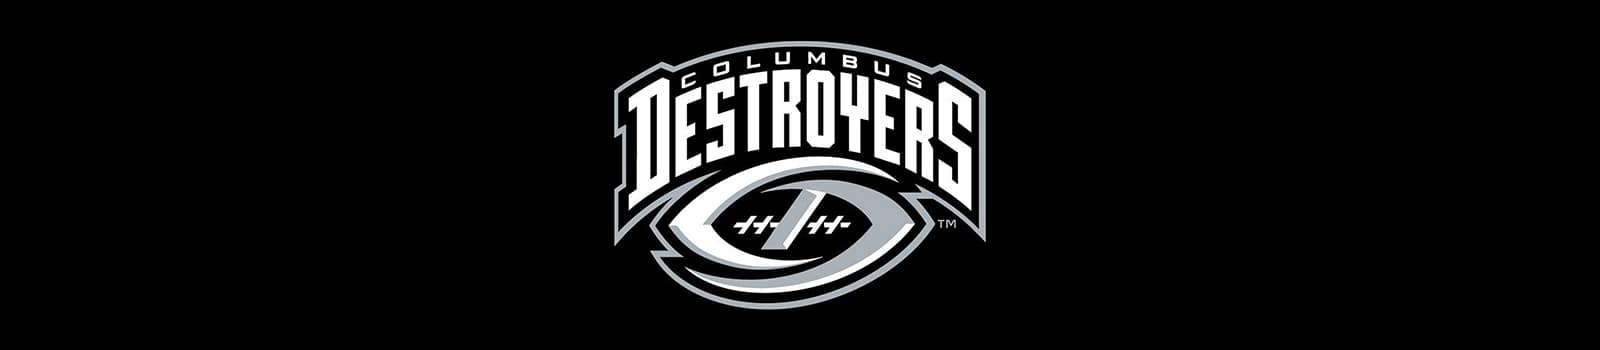 Columbus Destroyers Logo